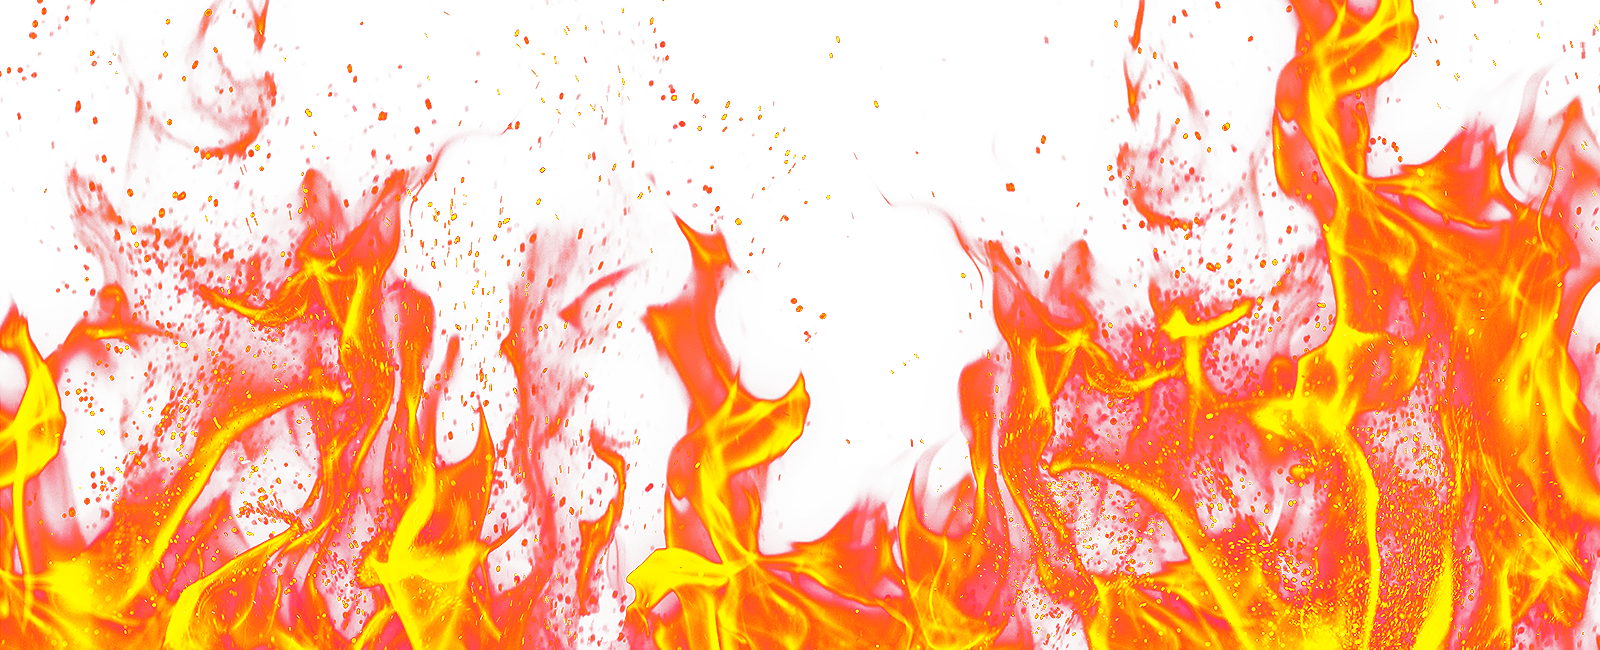 Fire overlay clipart graphic free download Fire Overlay Png, png collections at sccpre.cat graphic free download